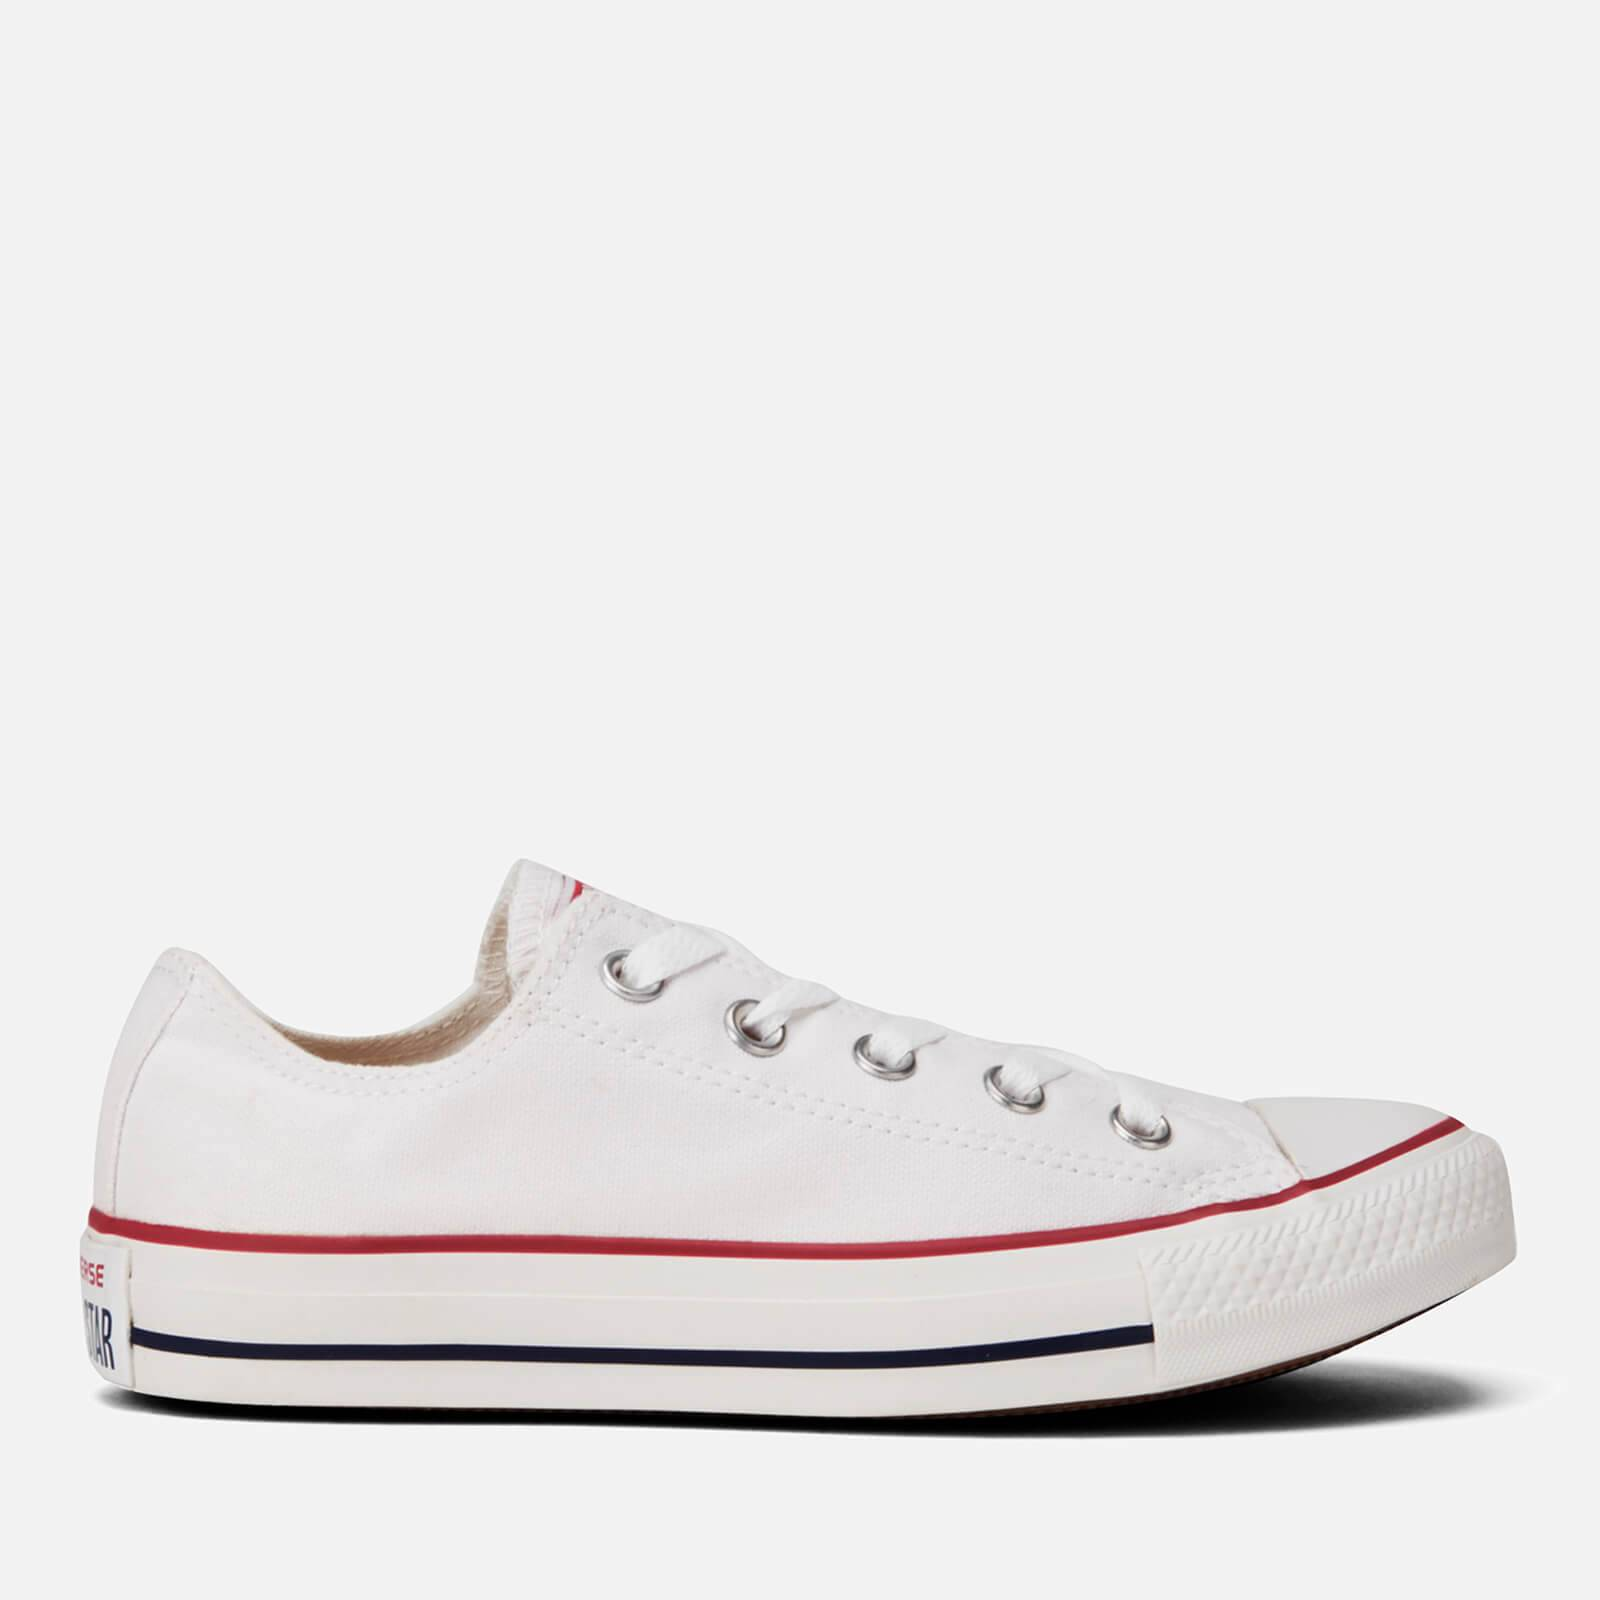 Converse Chuck Taylor All Star Ox Trainers - Optical White - UK 5